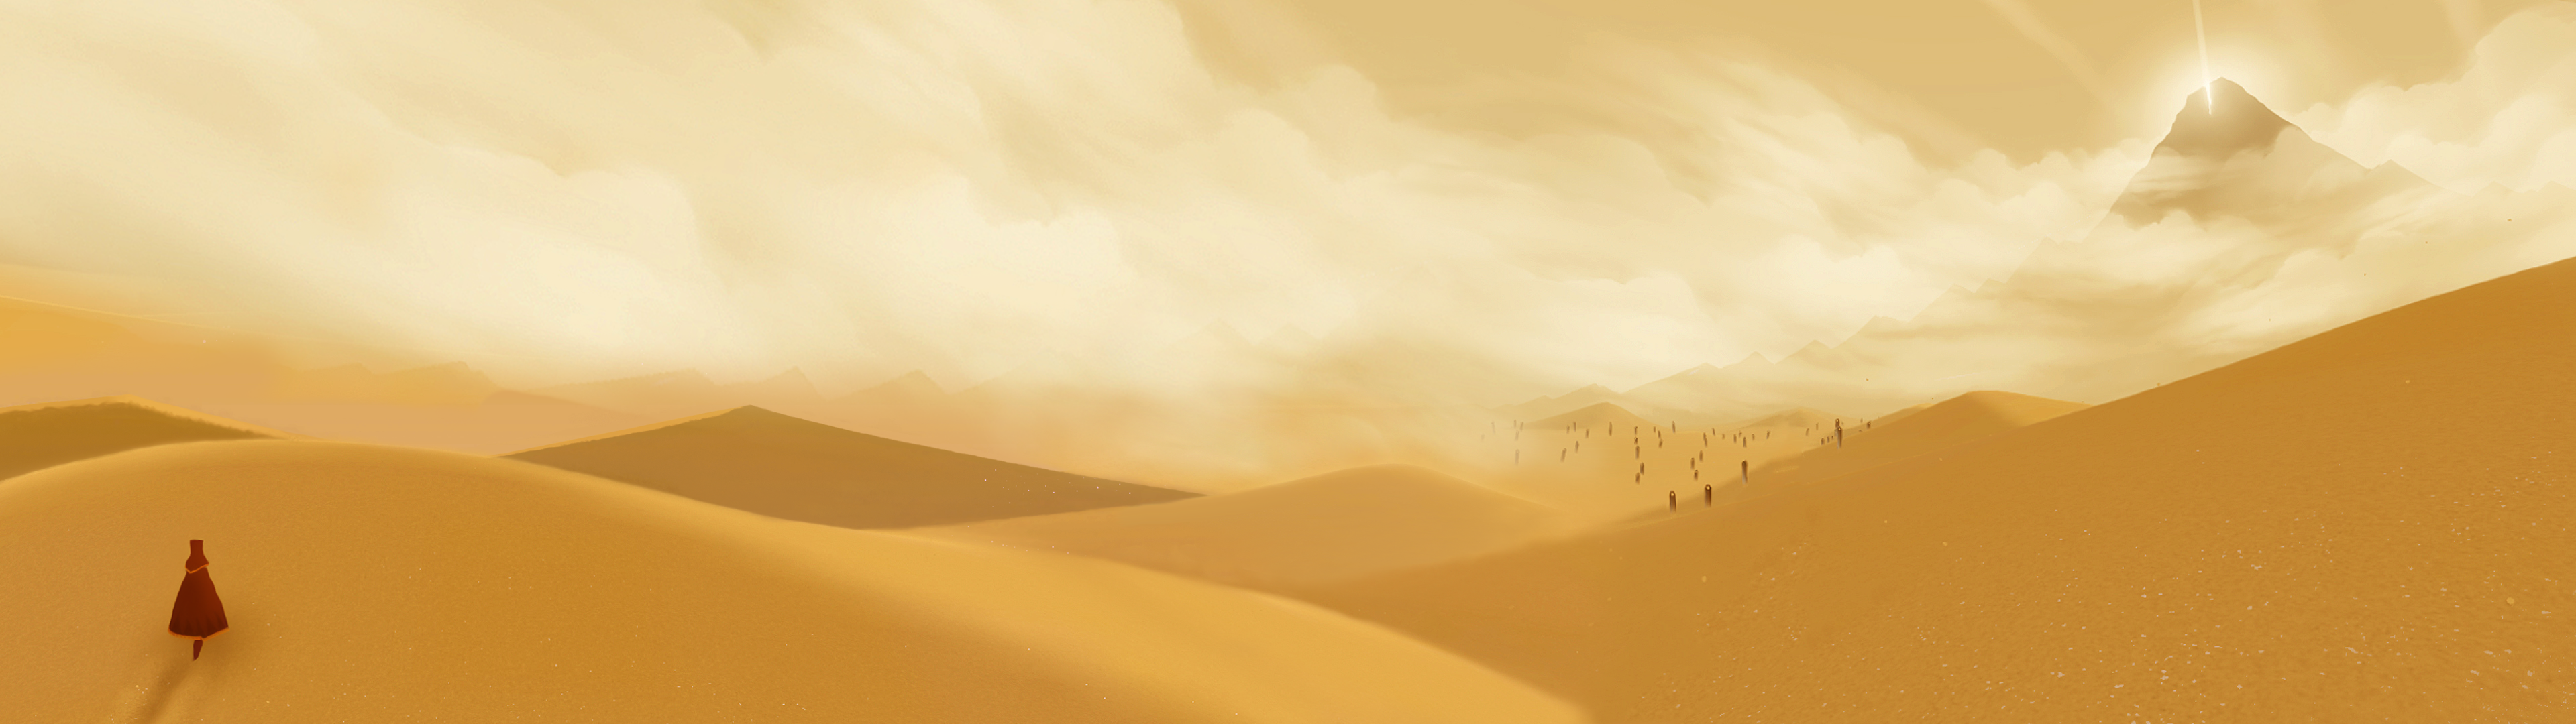 Journey Dual Screen Wallpaper 3840x1080 By Nonexistent One